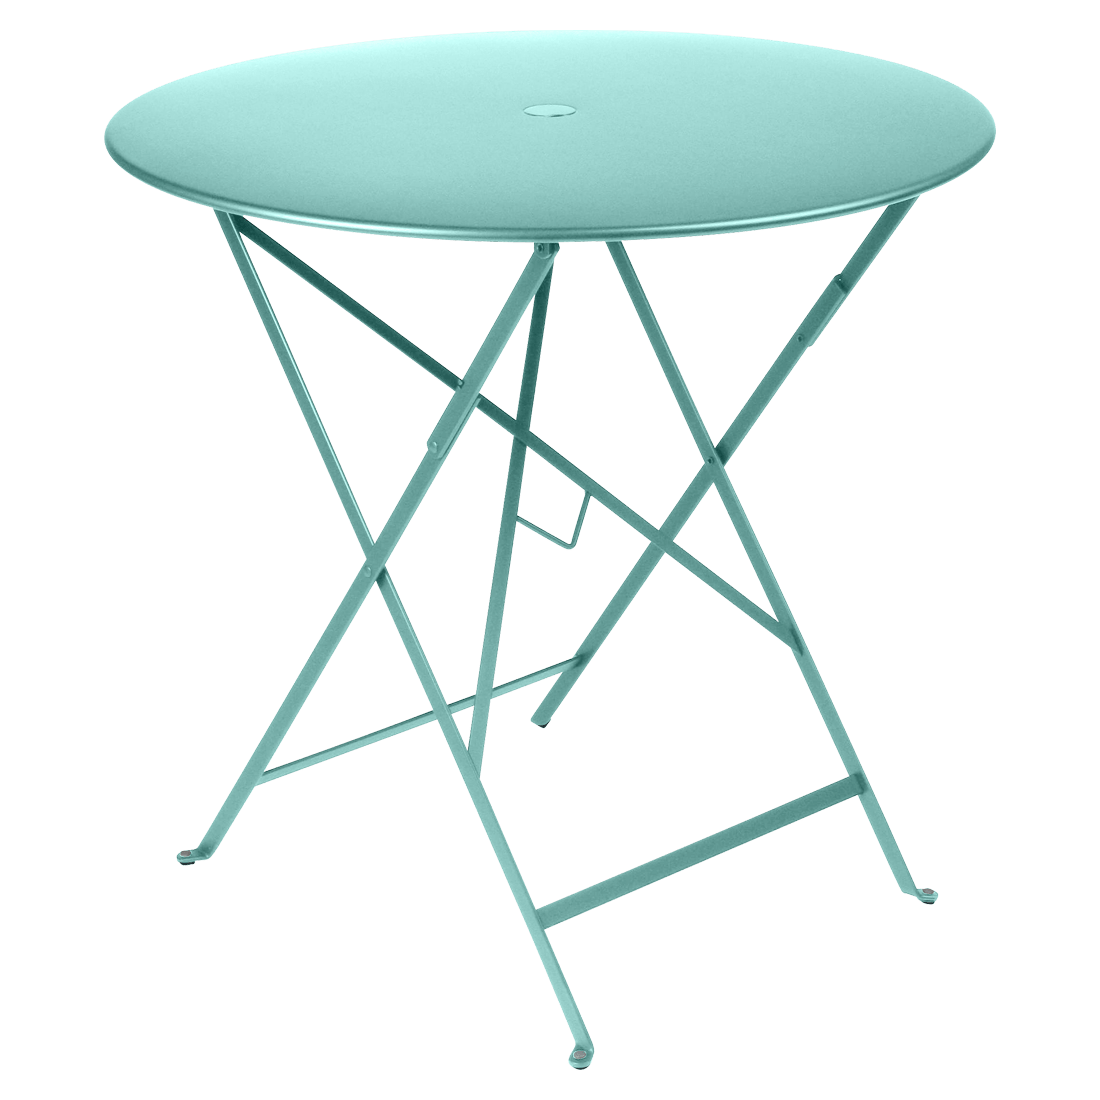 Table Bistrot Ronde Exterieur Table Bistro Ronde 77 Cm Table De Jardin Table Ronde Jardin